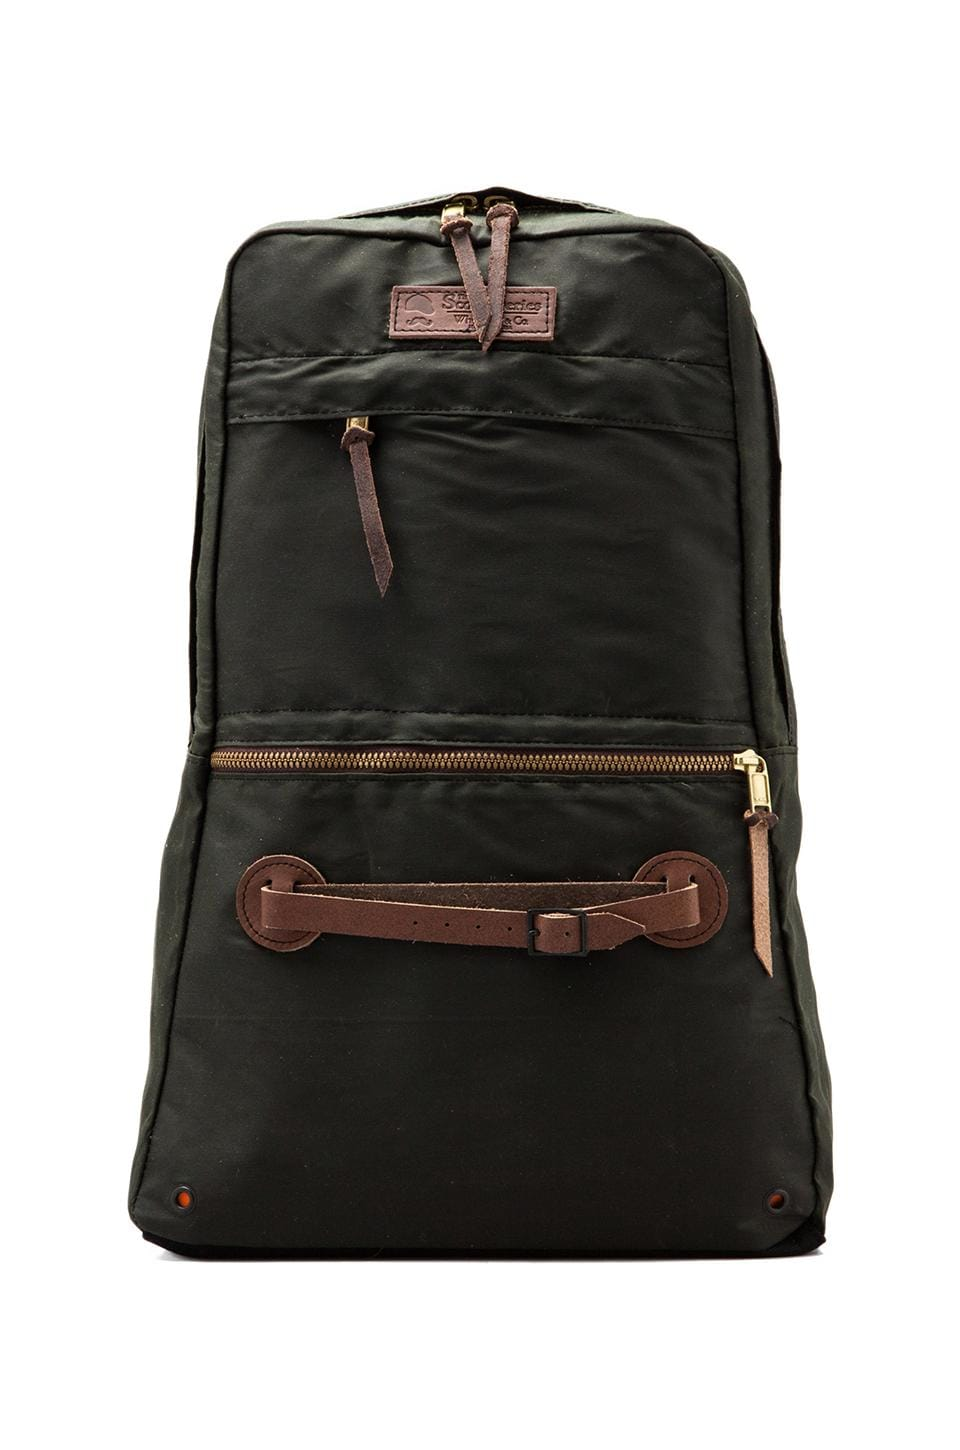 Wheelmen & Co. Scout Daypack in Military Green